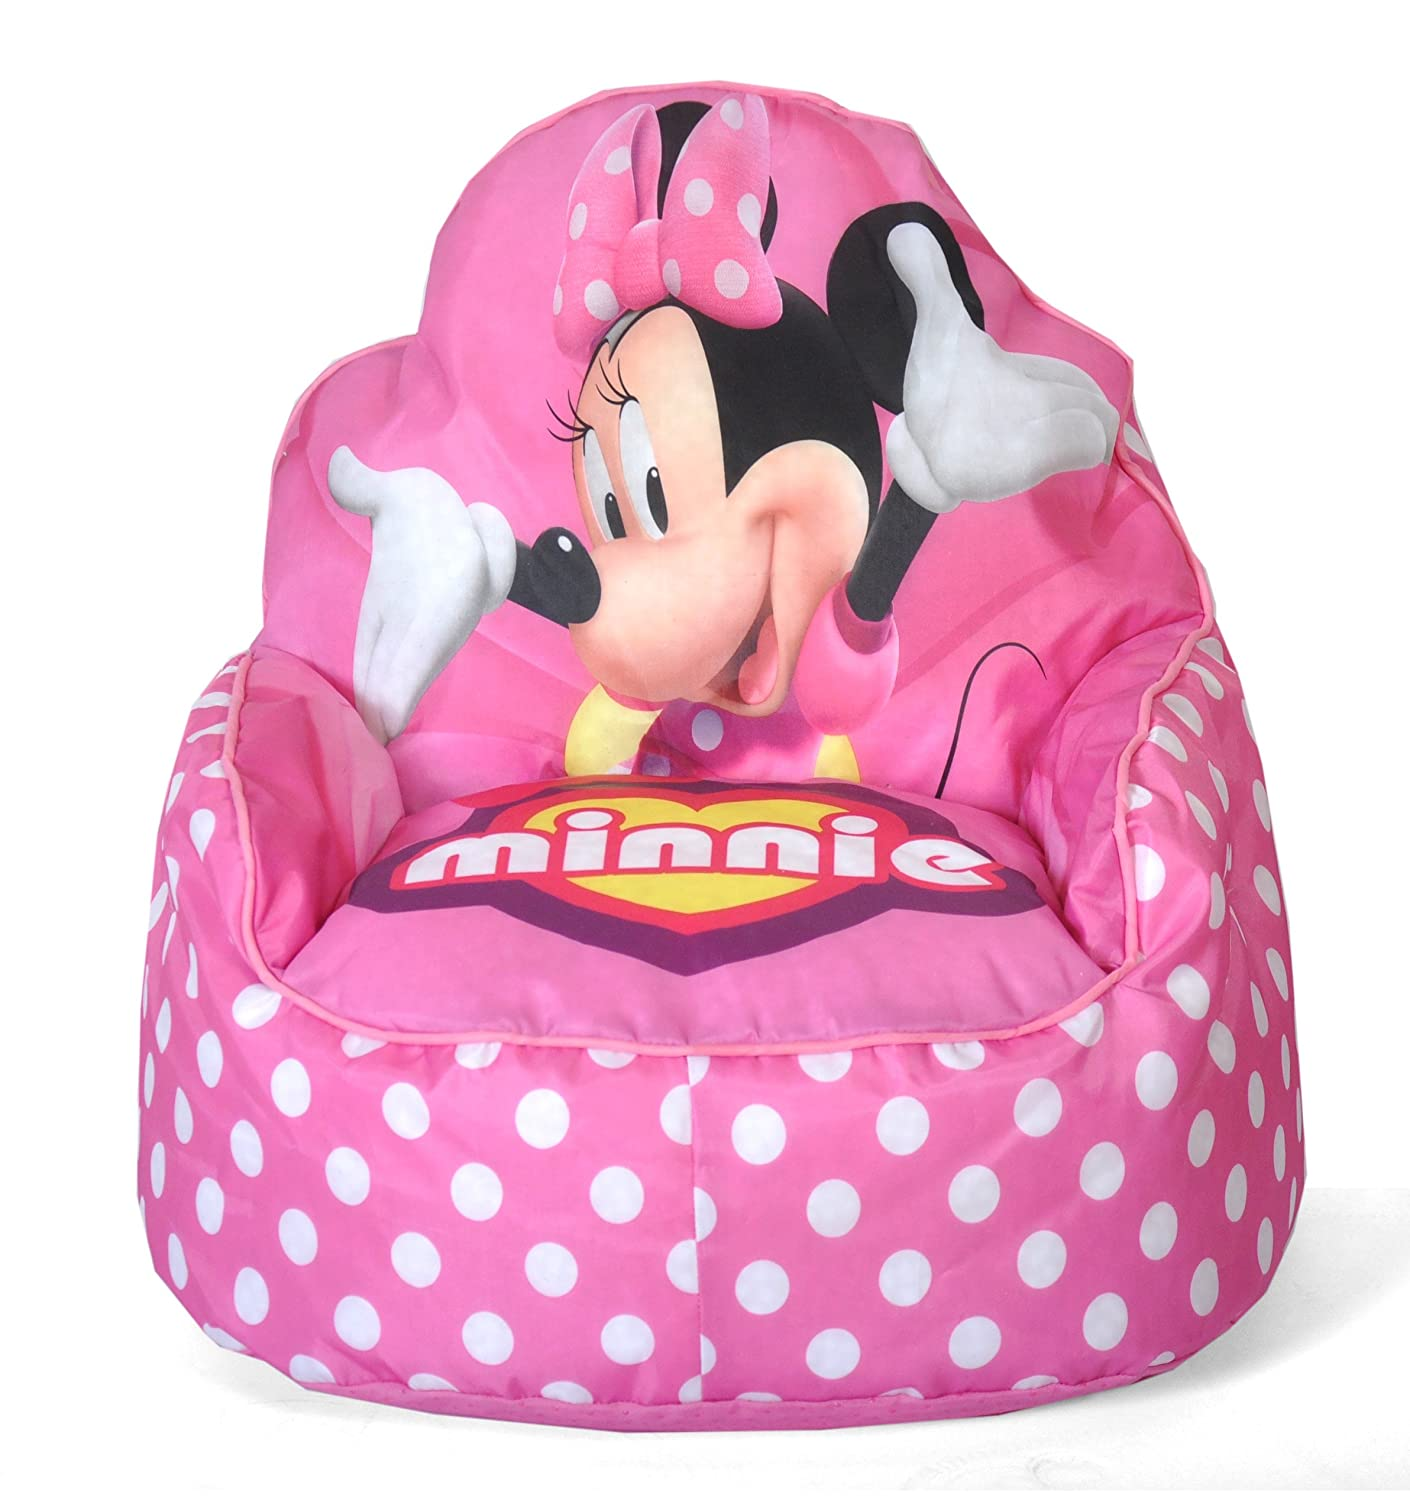 Amazon.com Disney Minnie Mouse Toddler Bean Bag Sofa Chair Toys u0026 Games  sc 1 st  Amazon.com & Amazon.com: Disney Minnie Mouse Toddler Bean Bag Sofa Chair: Toys ...